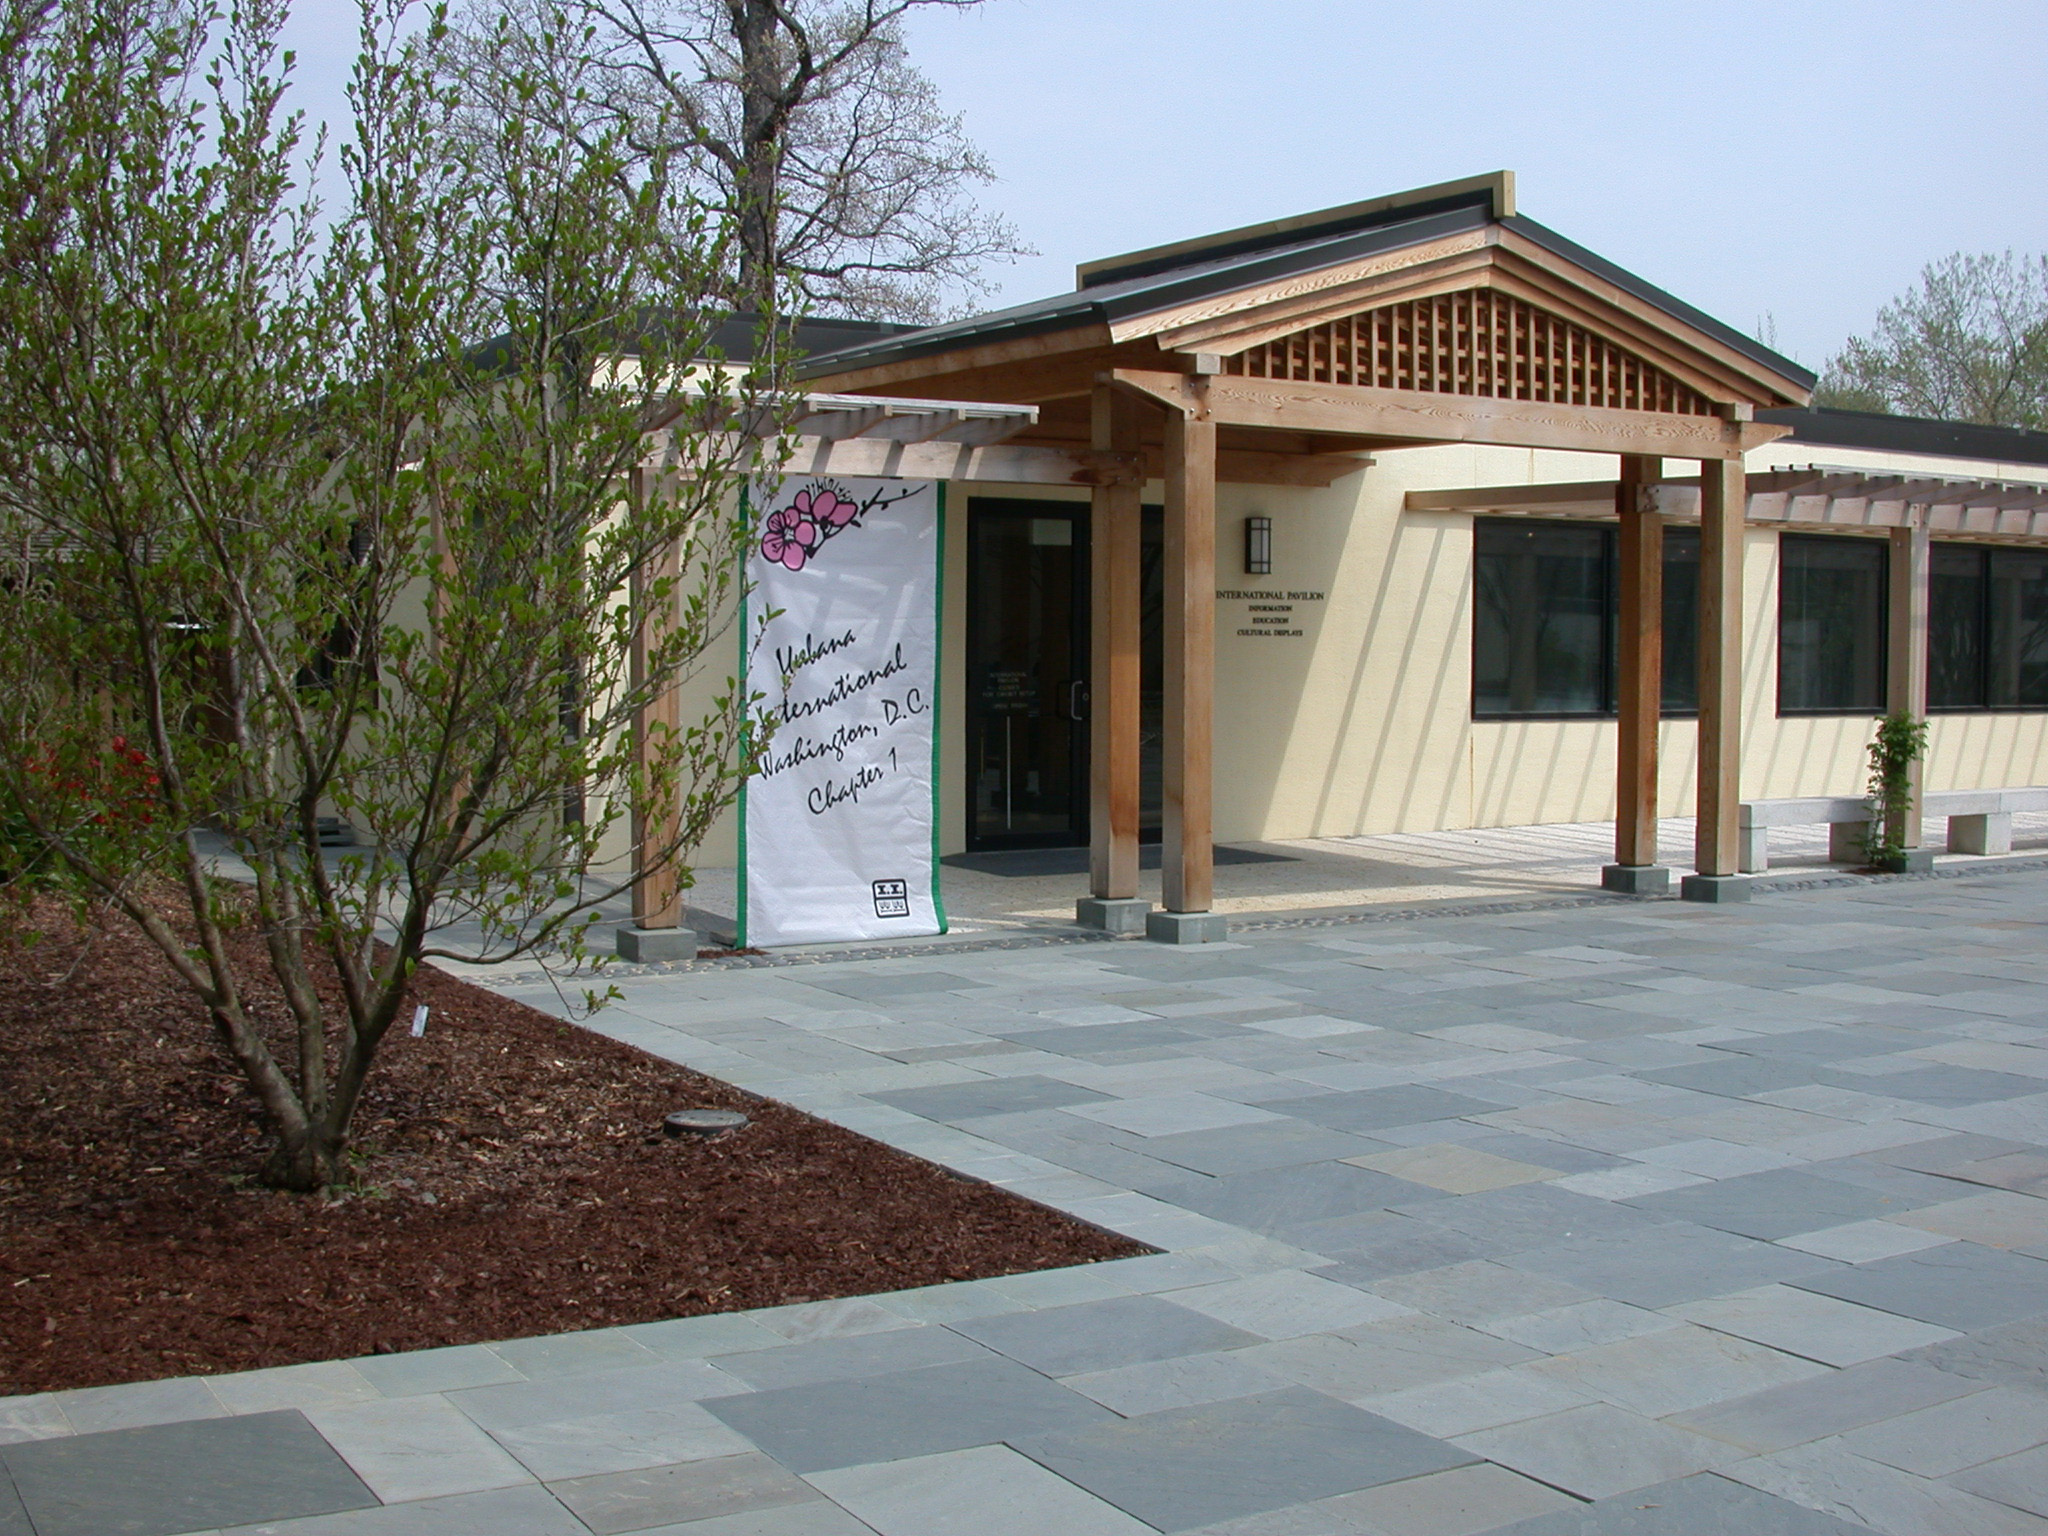 Mary Mrose Exhibit Gallery at the National Bonsai & Penjing Museum